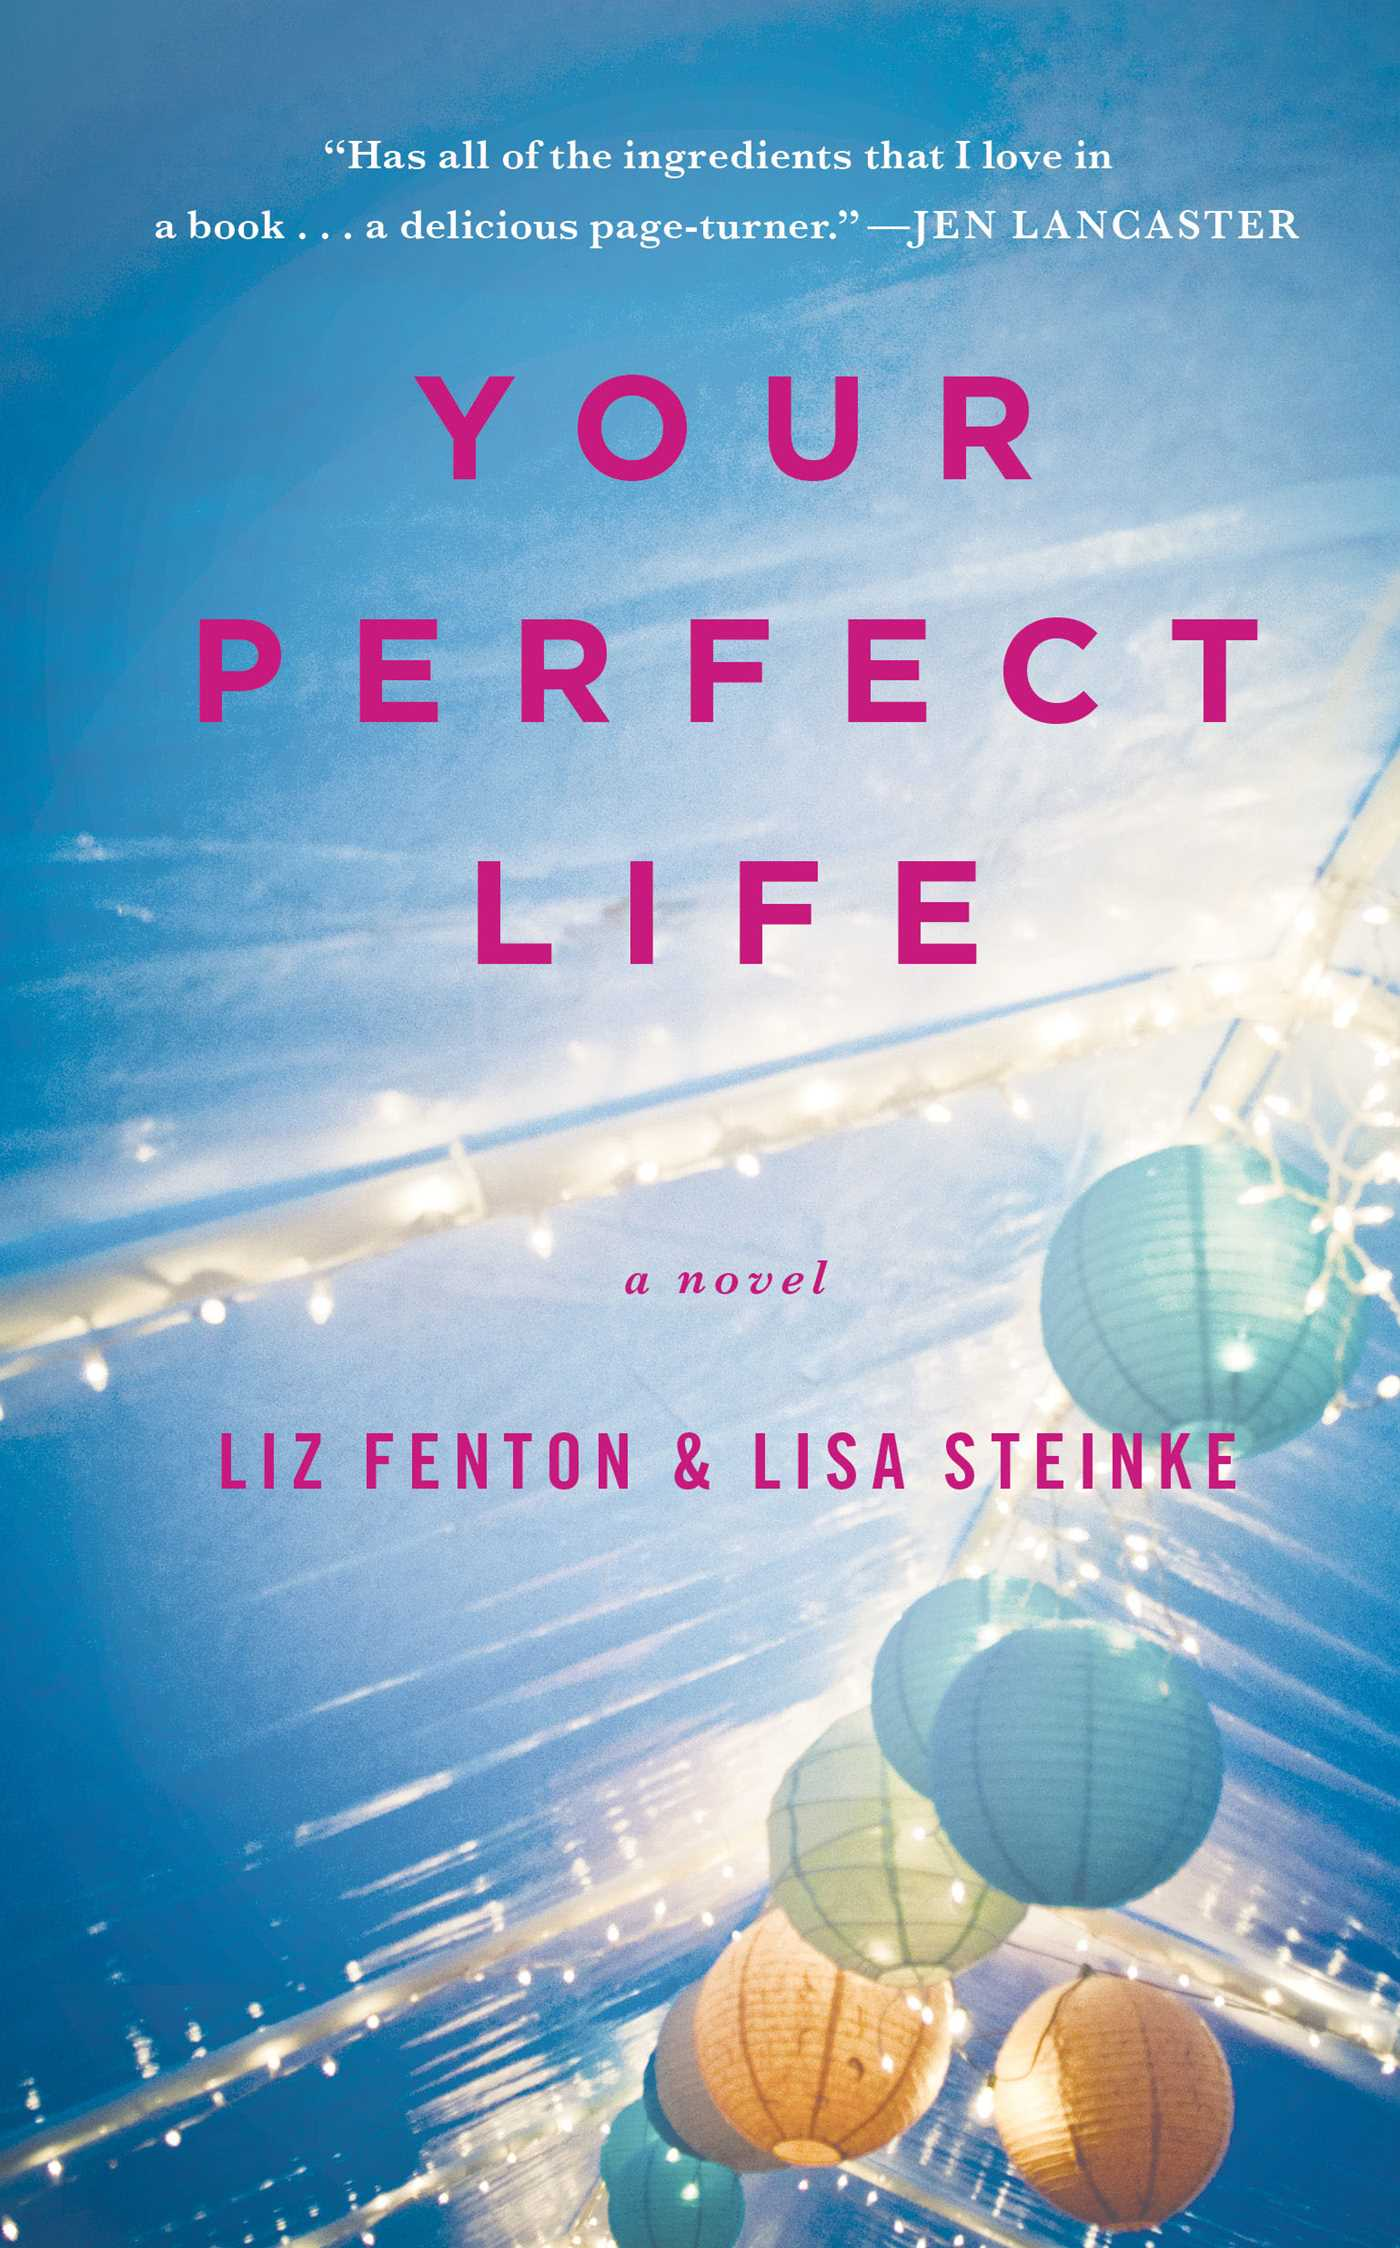 Your perfect life 9781476730578 hr